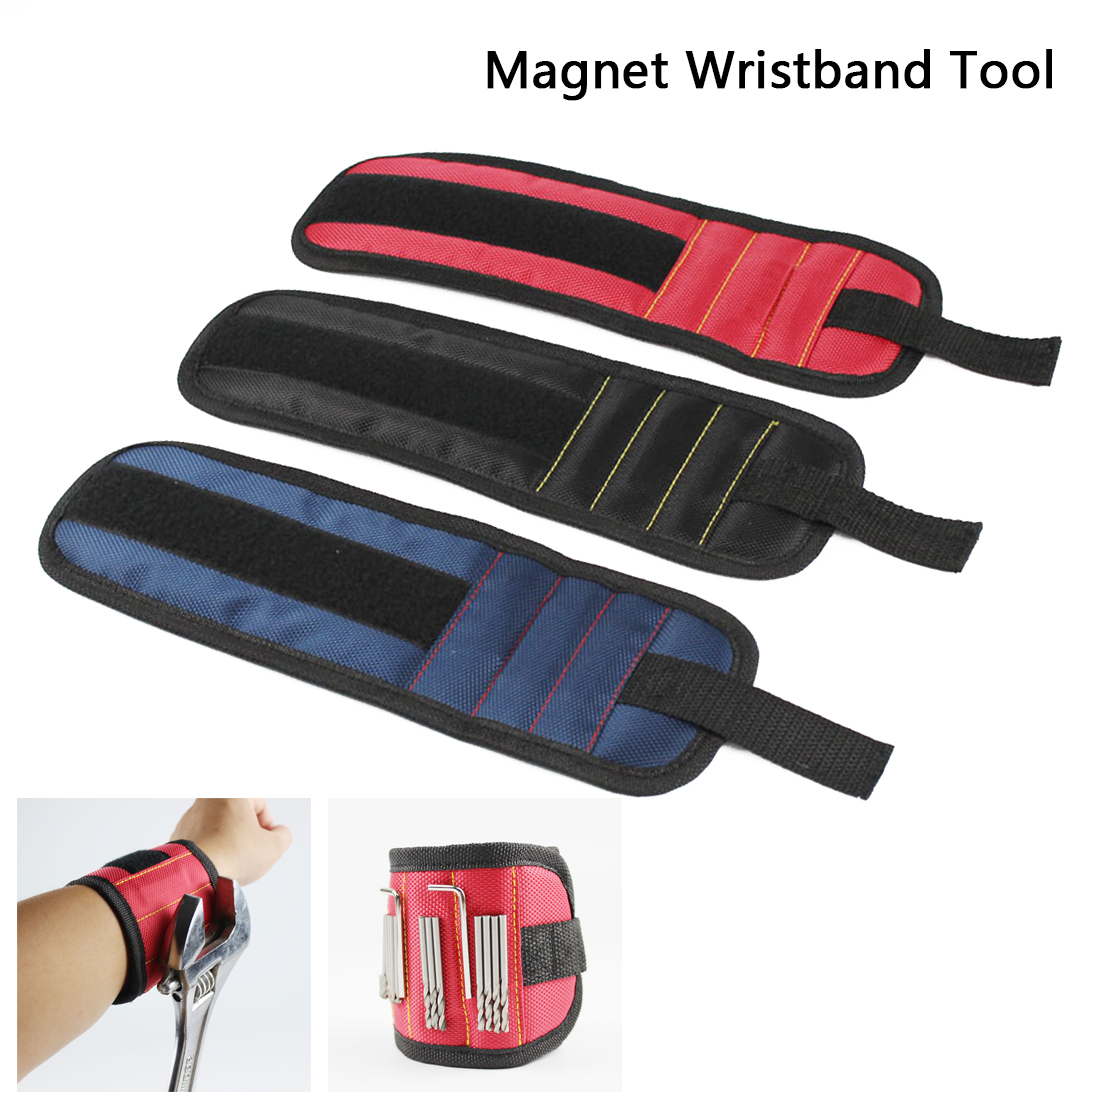 Magnetic Wrist Support Band With Strong Magnets For Holding Screws Nail Bracelet Belt Support Chuck Sports Tool Storage